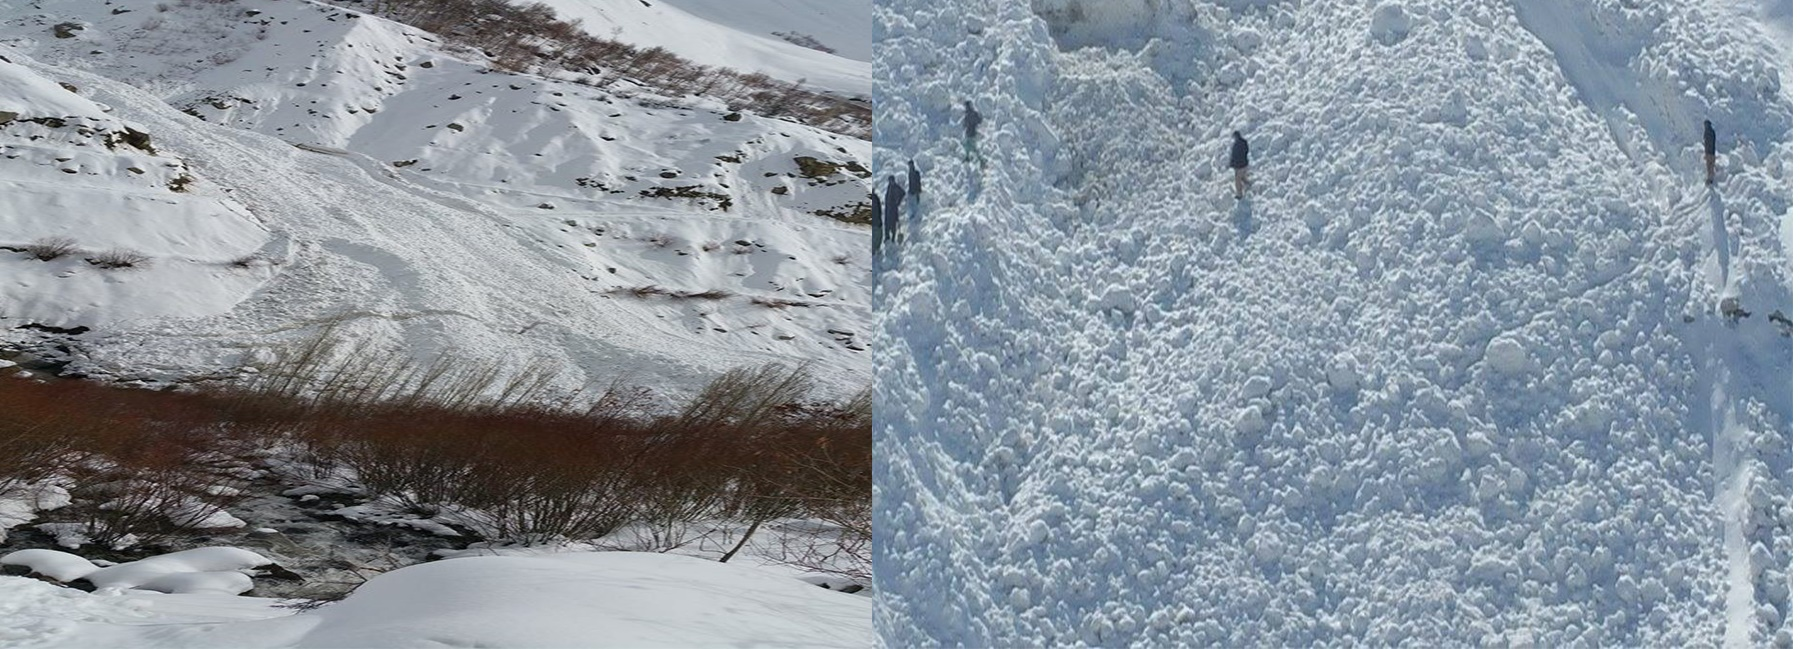 No breakthrough made as search and rescue efforts continue in avalanche hit area of Chitral